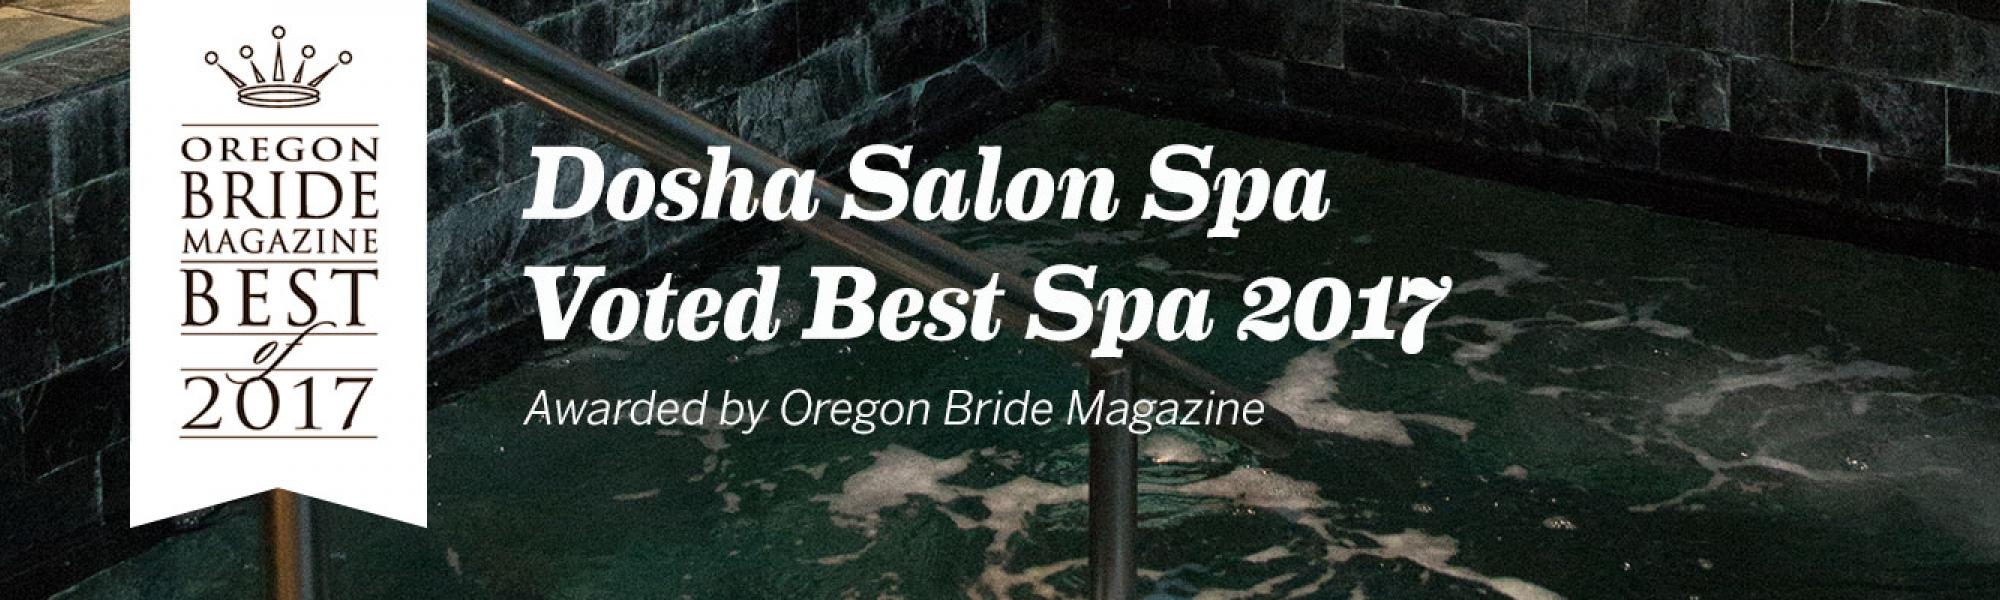 Oregon Bride Magazine: Dosha Salon Spa Best Spa 2017